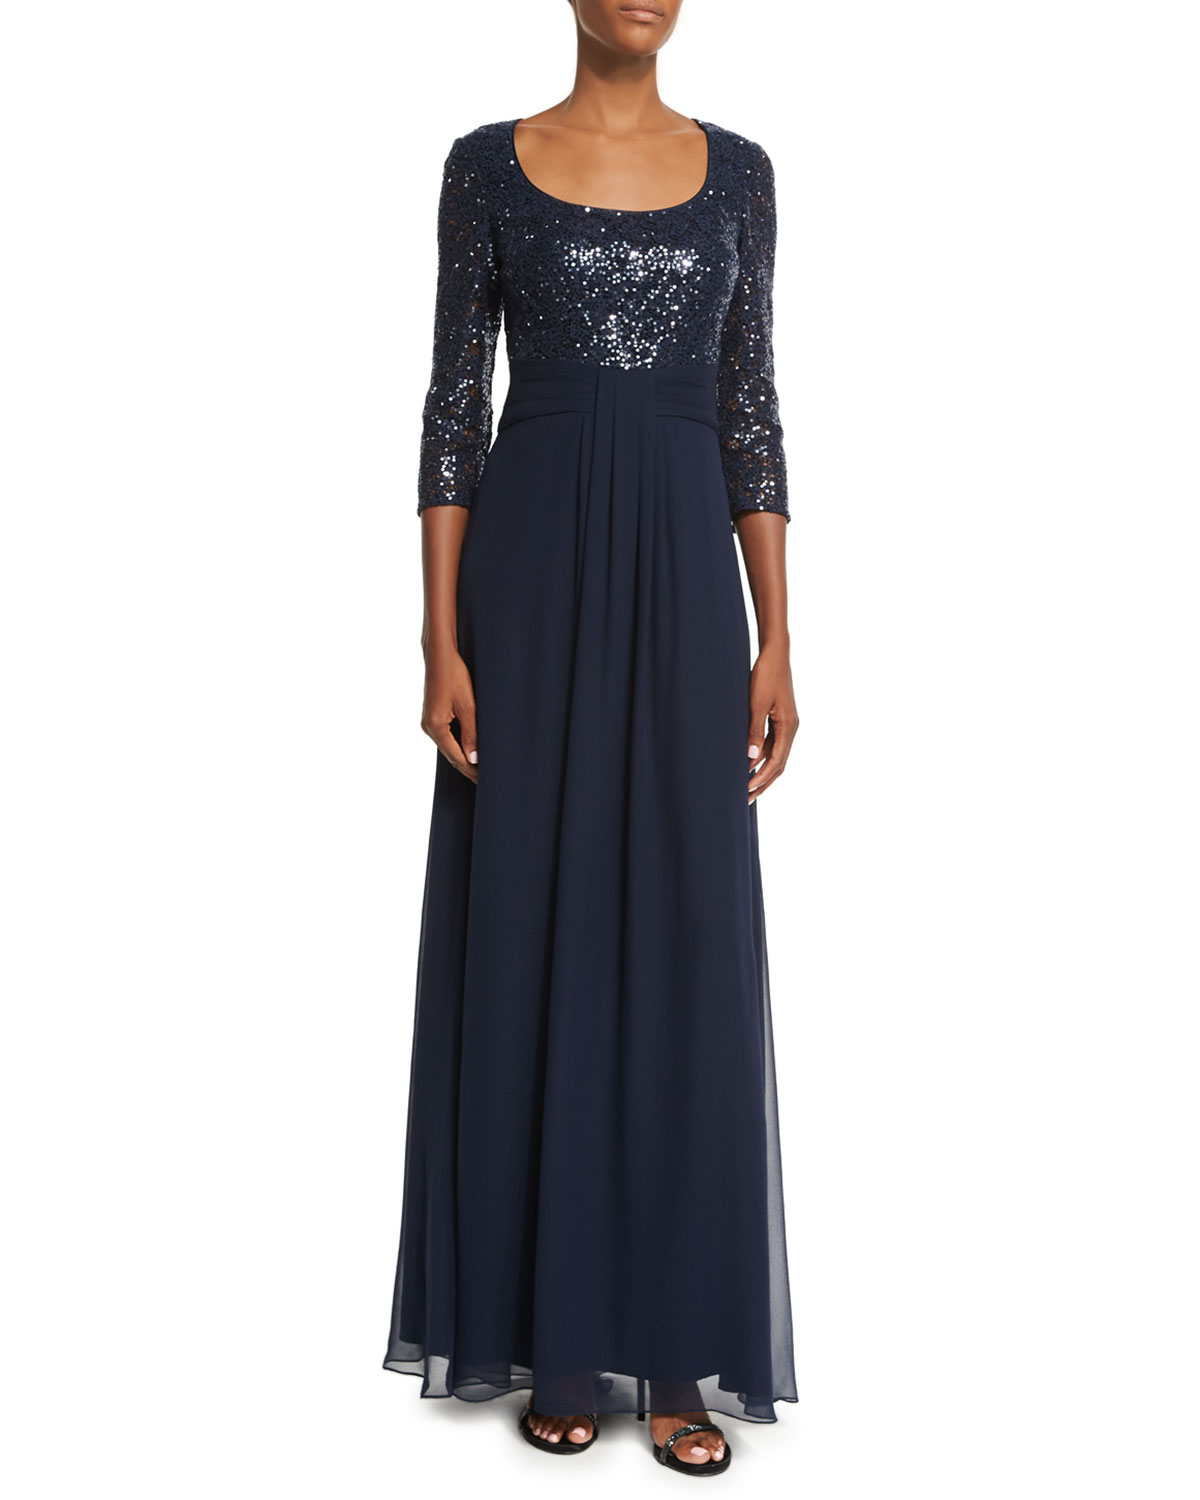 Kay Unger New York 34 Sleeve Sequined Combo Gown Neiman Marcus